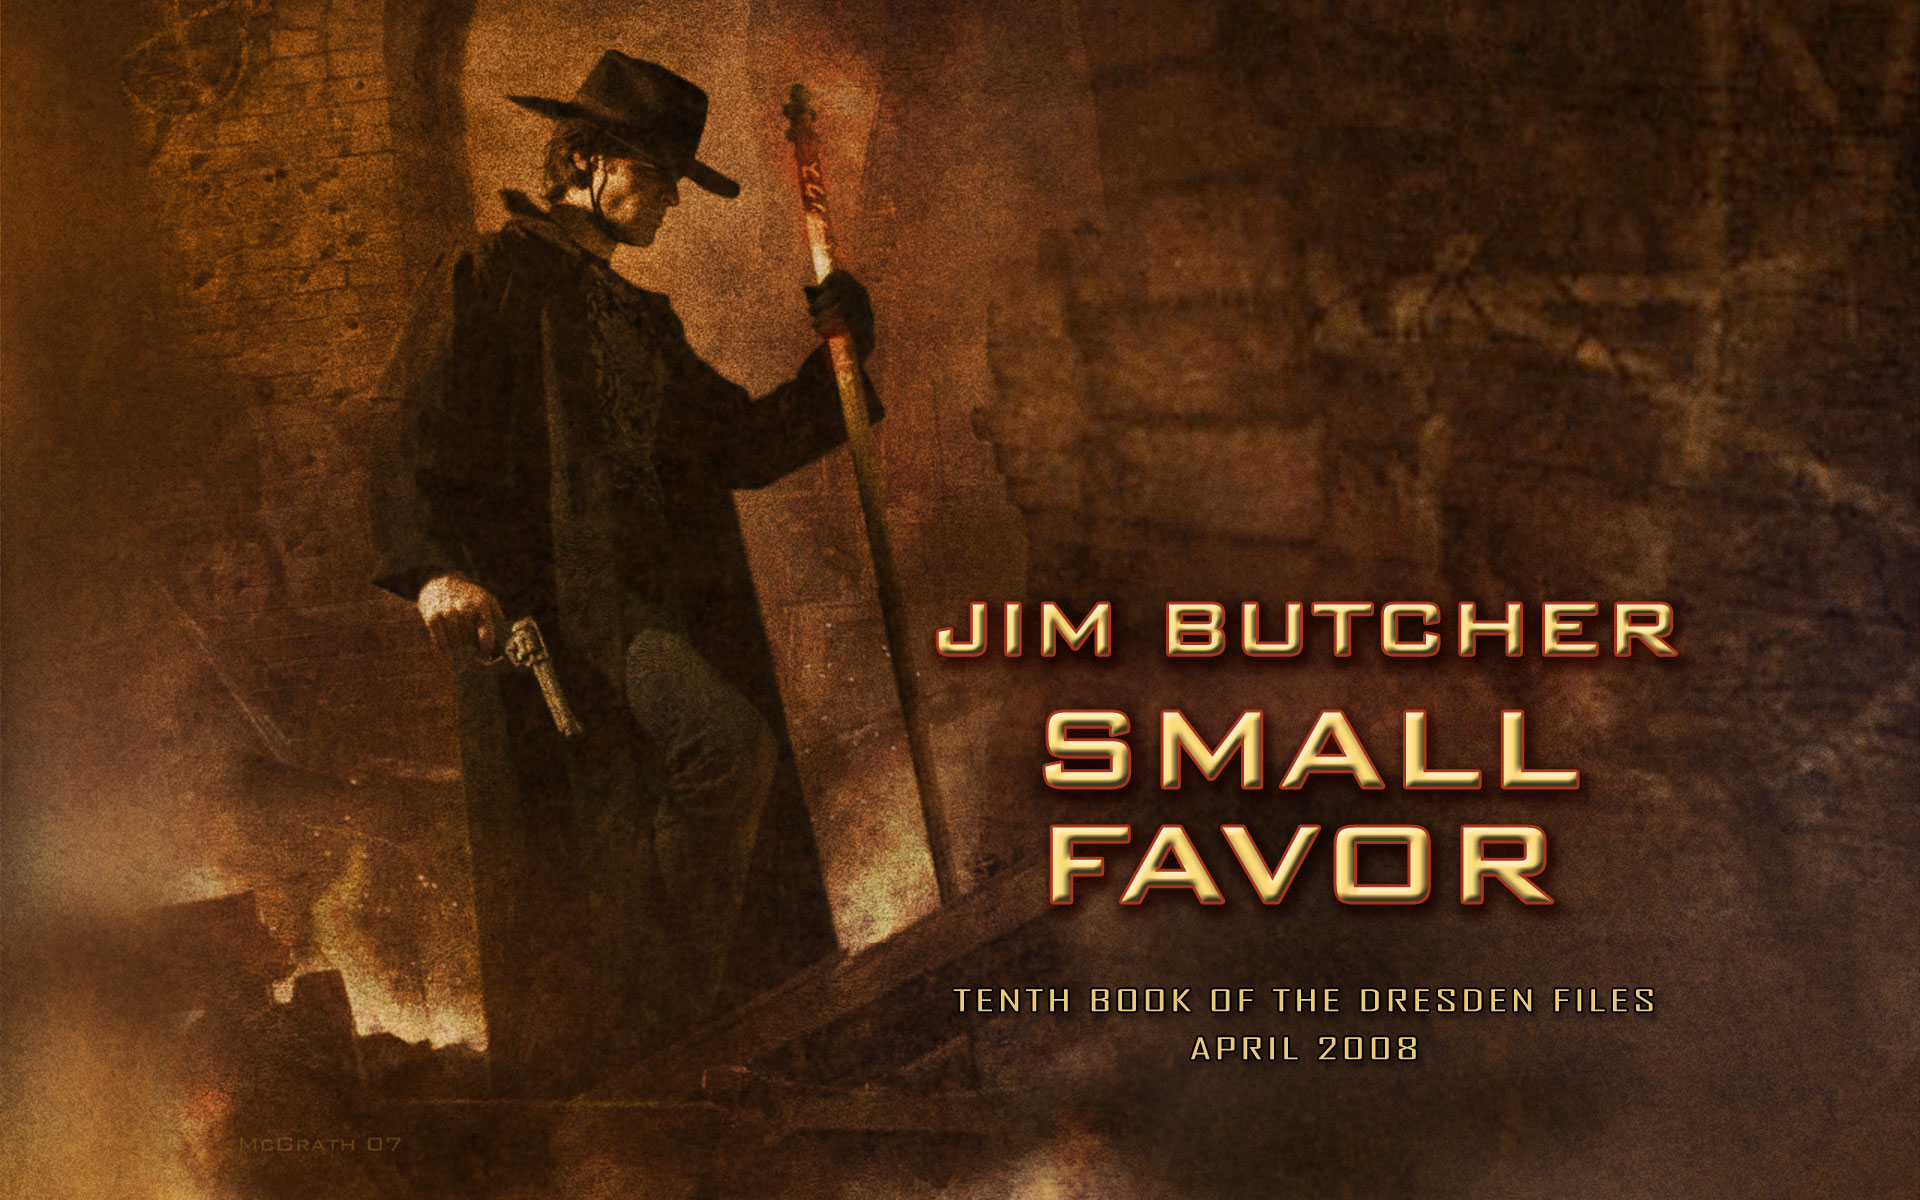 Small Favor Cover And Wallpaper Jim Butcher